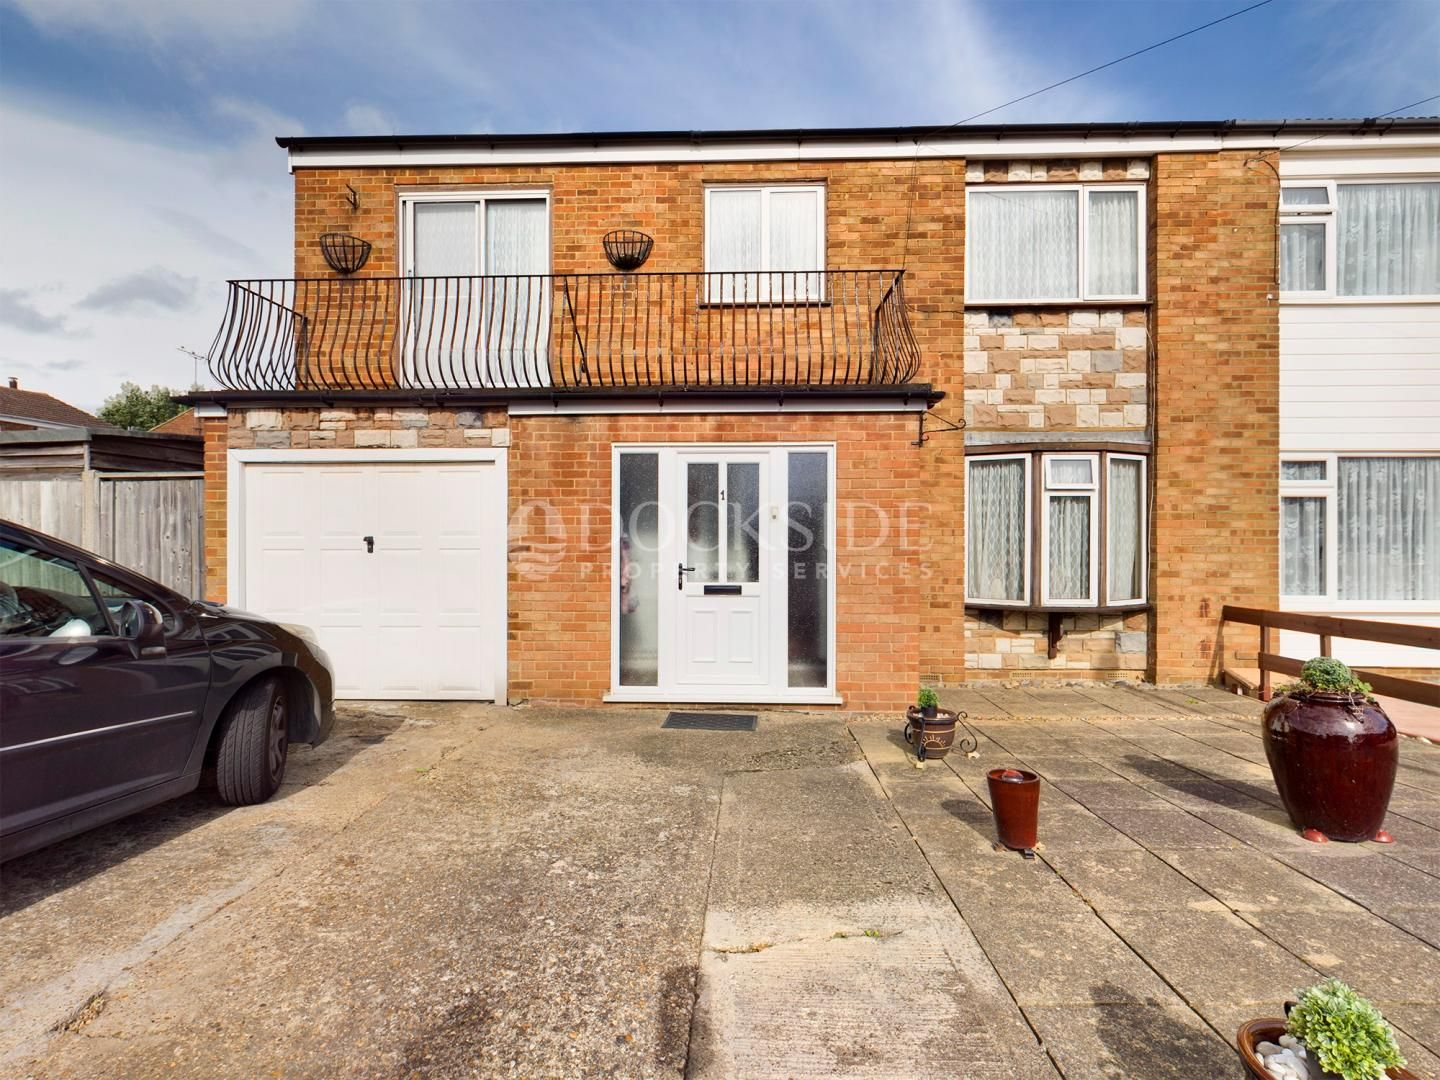 4 bed house for sale in Levett Close, ME3